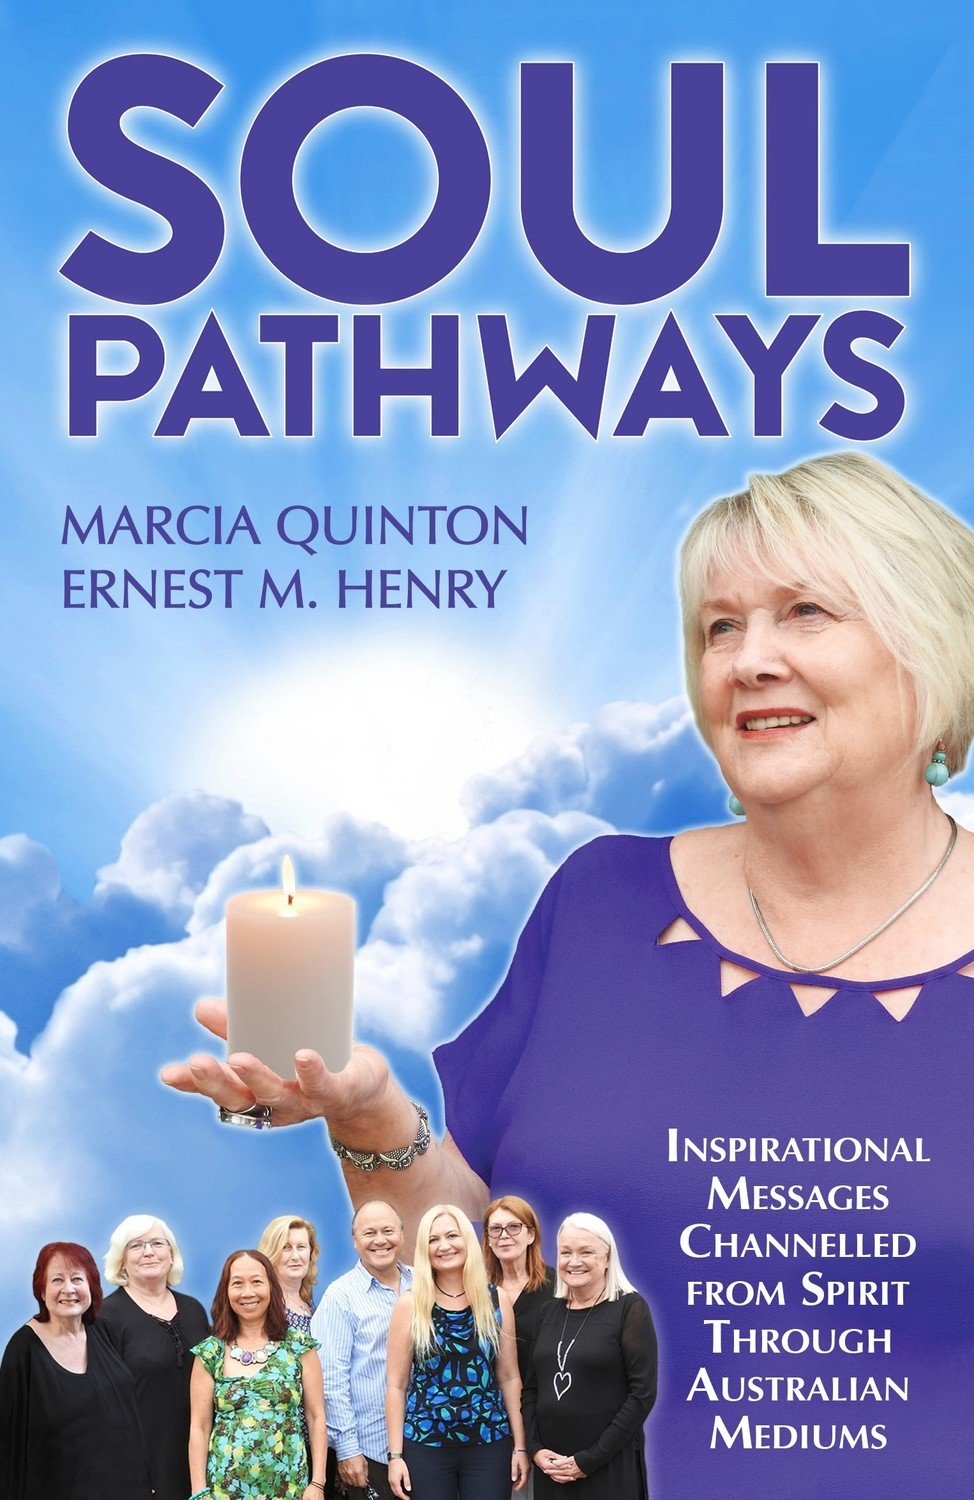 Soul Pathways authors Marcia Quinton & Ernest M.Henry Printed version